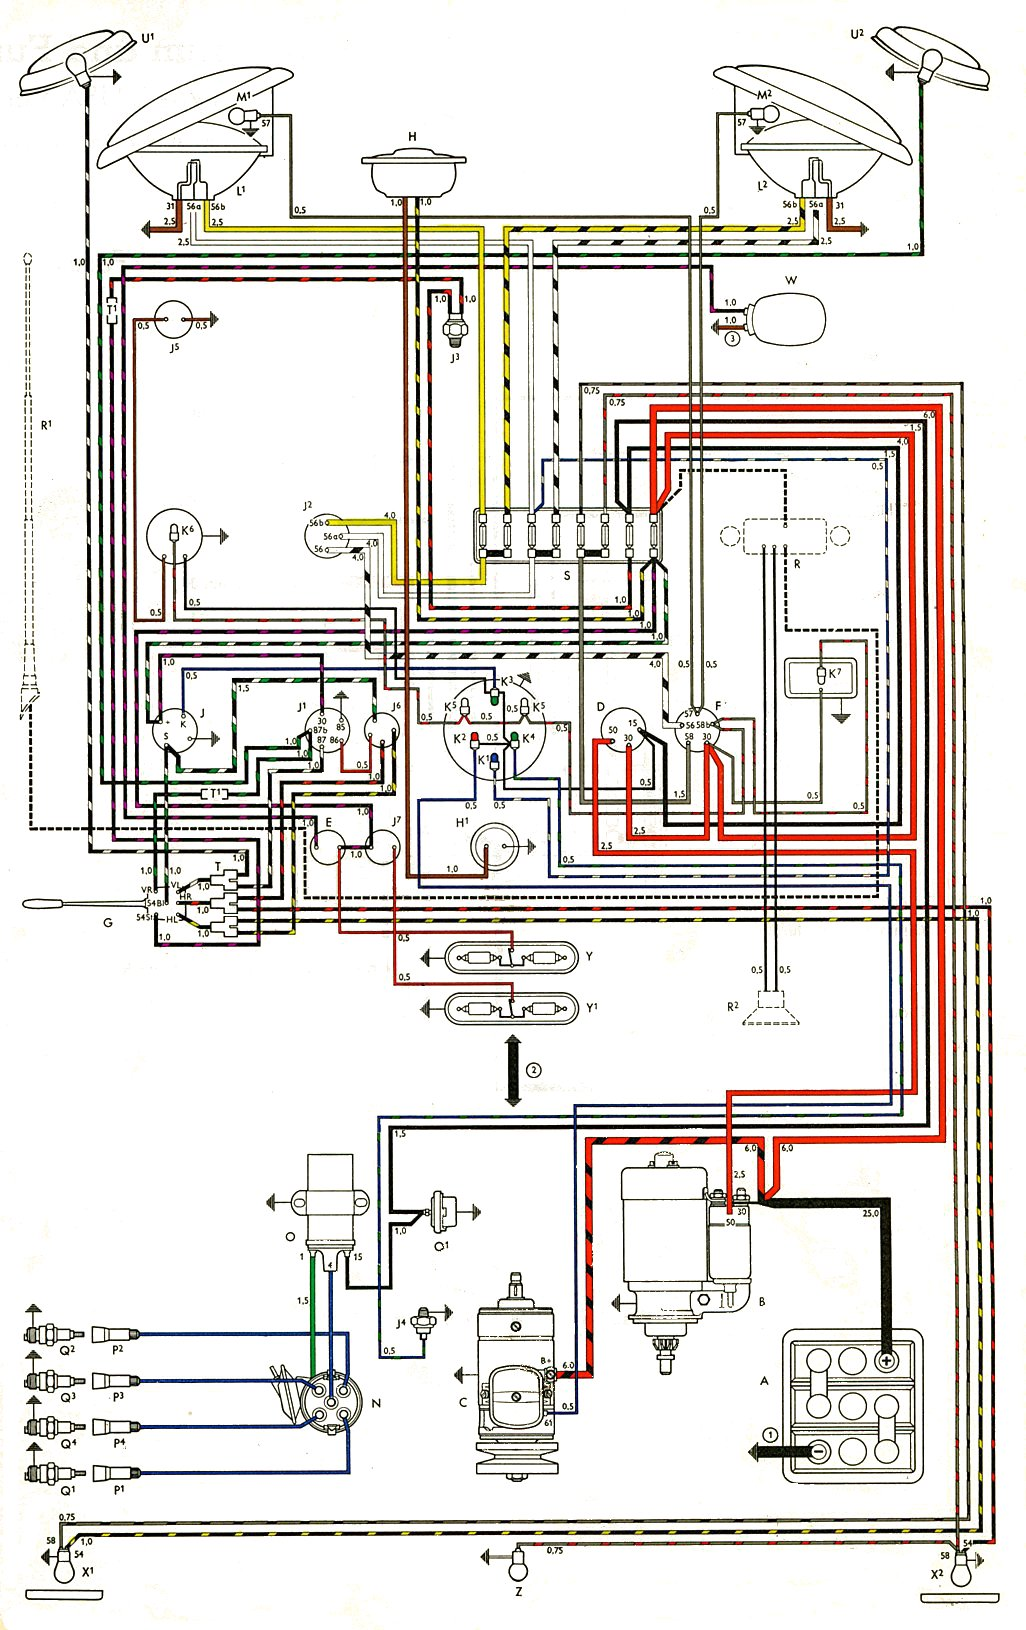 bus_63_USA thesamba com type 2 wiring diagrams Electrical Wiring Diagrams at alyssarenee.co